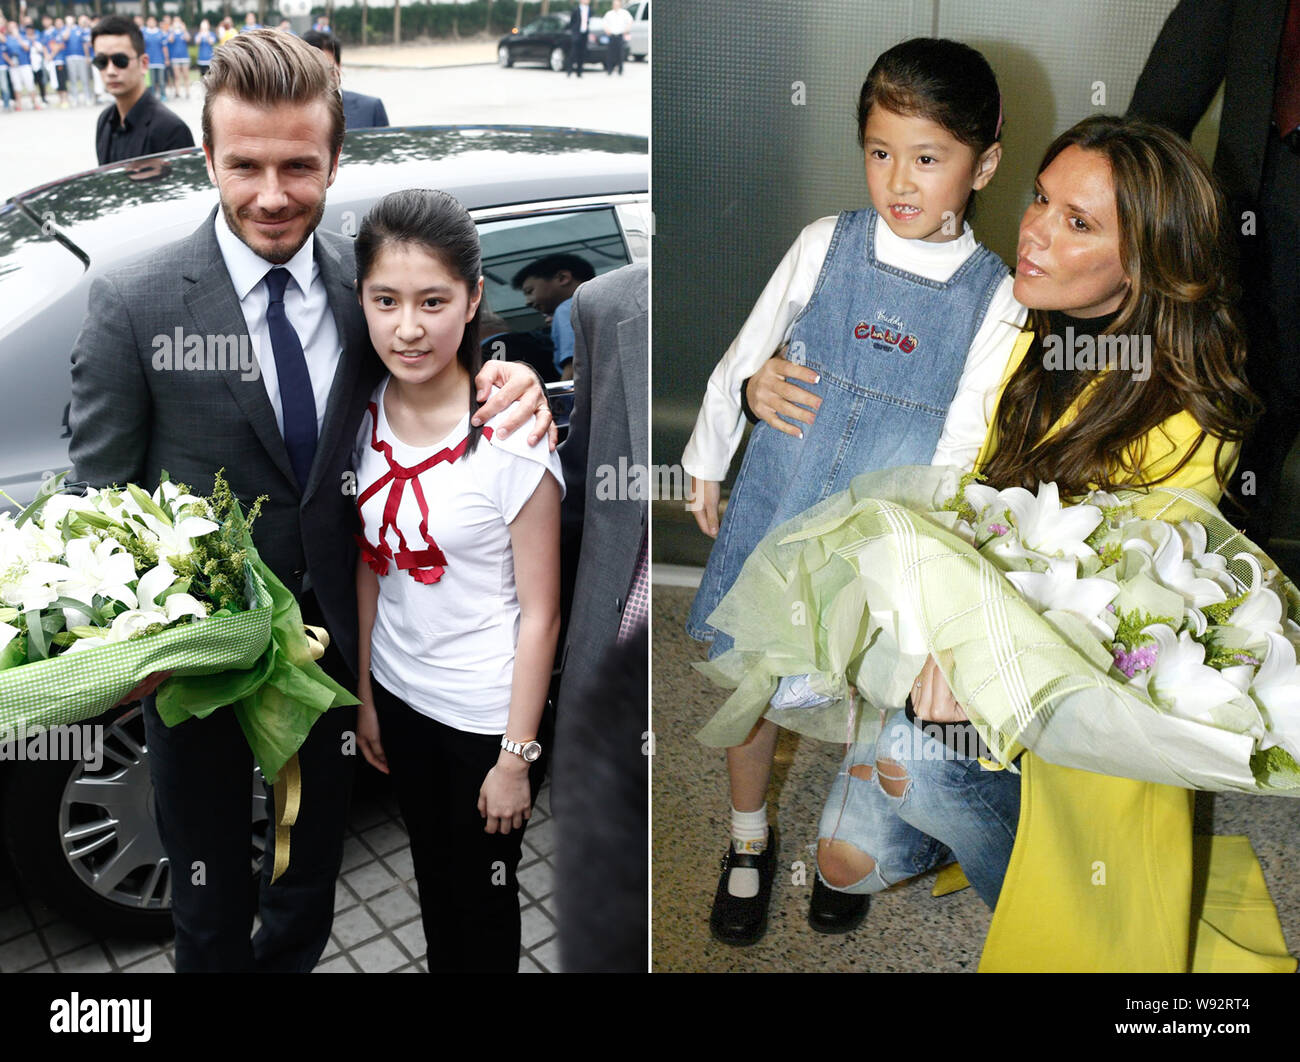 Victoria Beckham Young High Resolution Stock Photography And Images Alamy